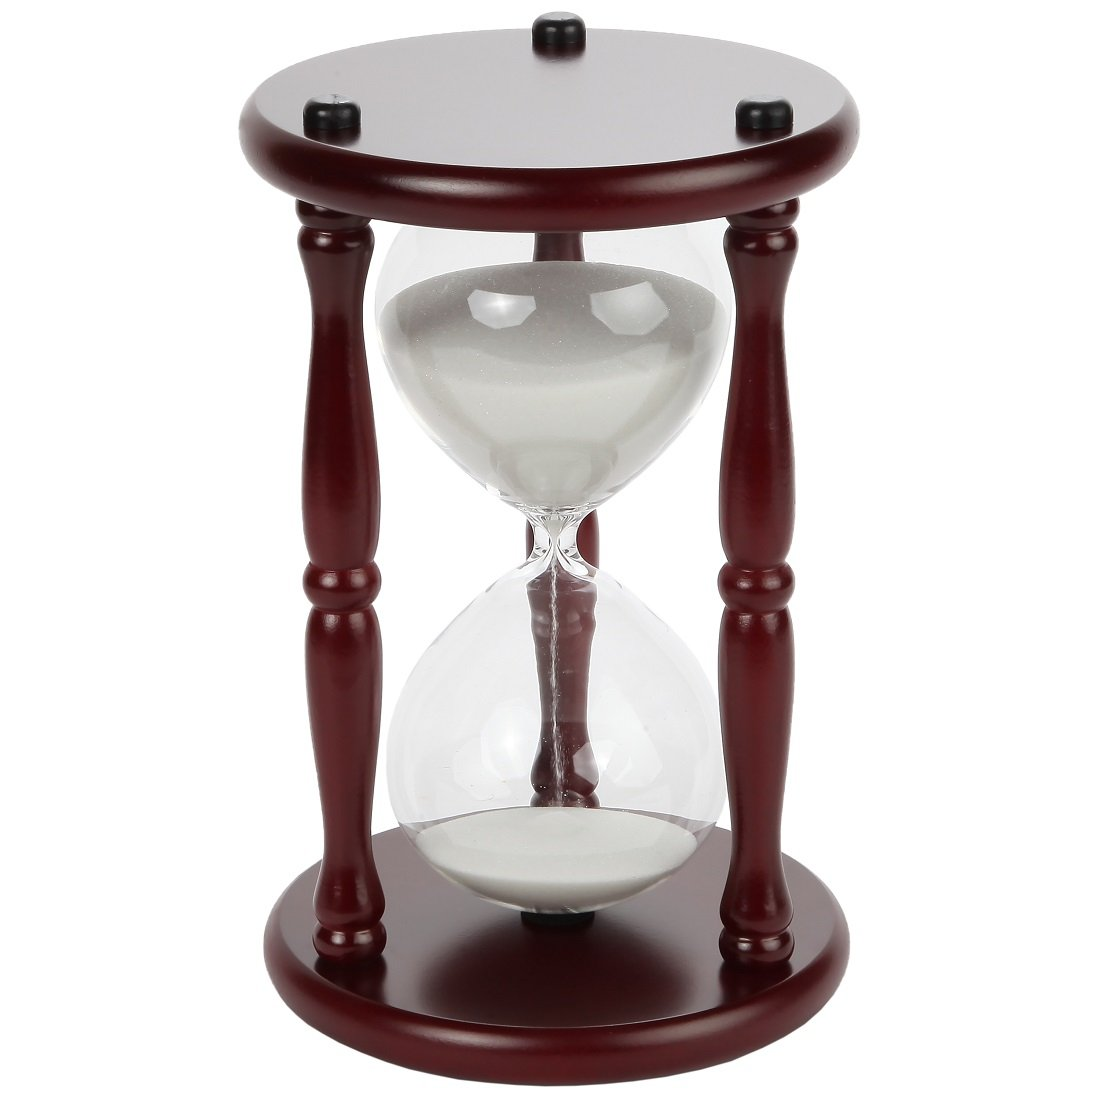 Lily's Home 60-Minute Hourglass Sand Timer with Cherry Finished Wood Base, Stylish Centerpiece for Home or Office Use, Ideal Gift for Executive, Chef or Kitchen Connoisseur (9.5'' Tall x 6'' Dia. Base) by Lily's Home